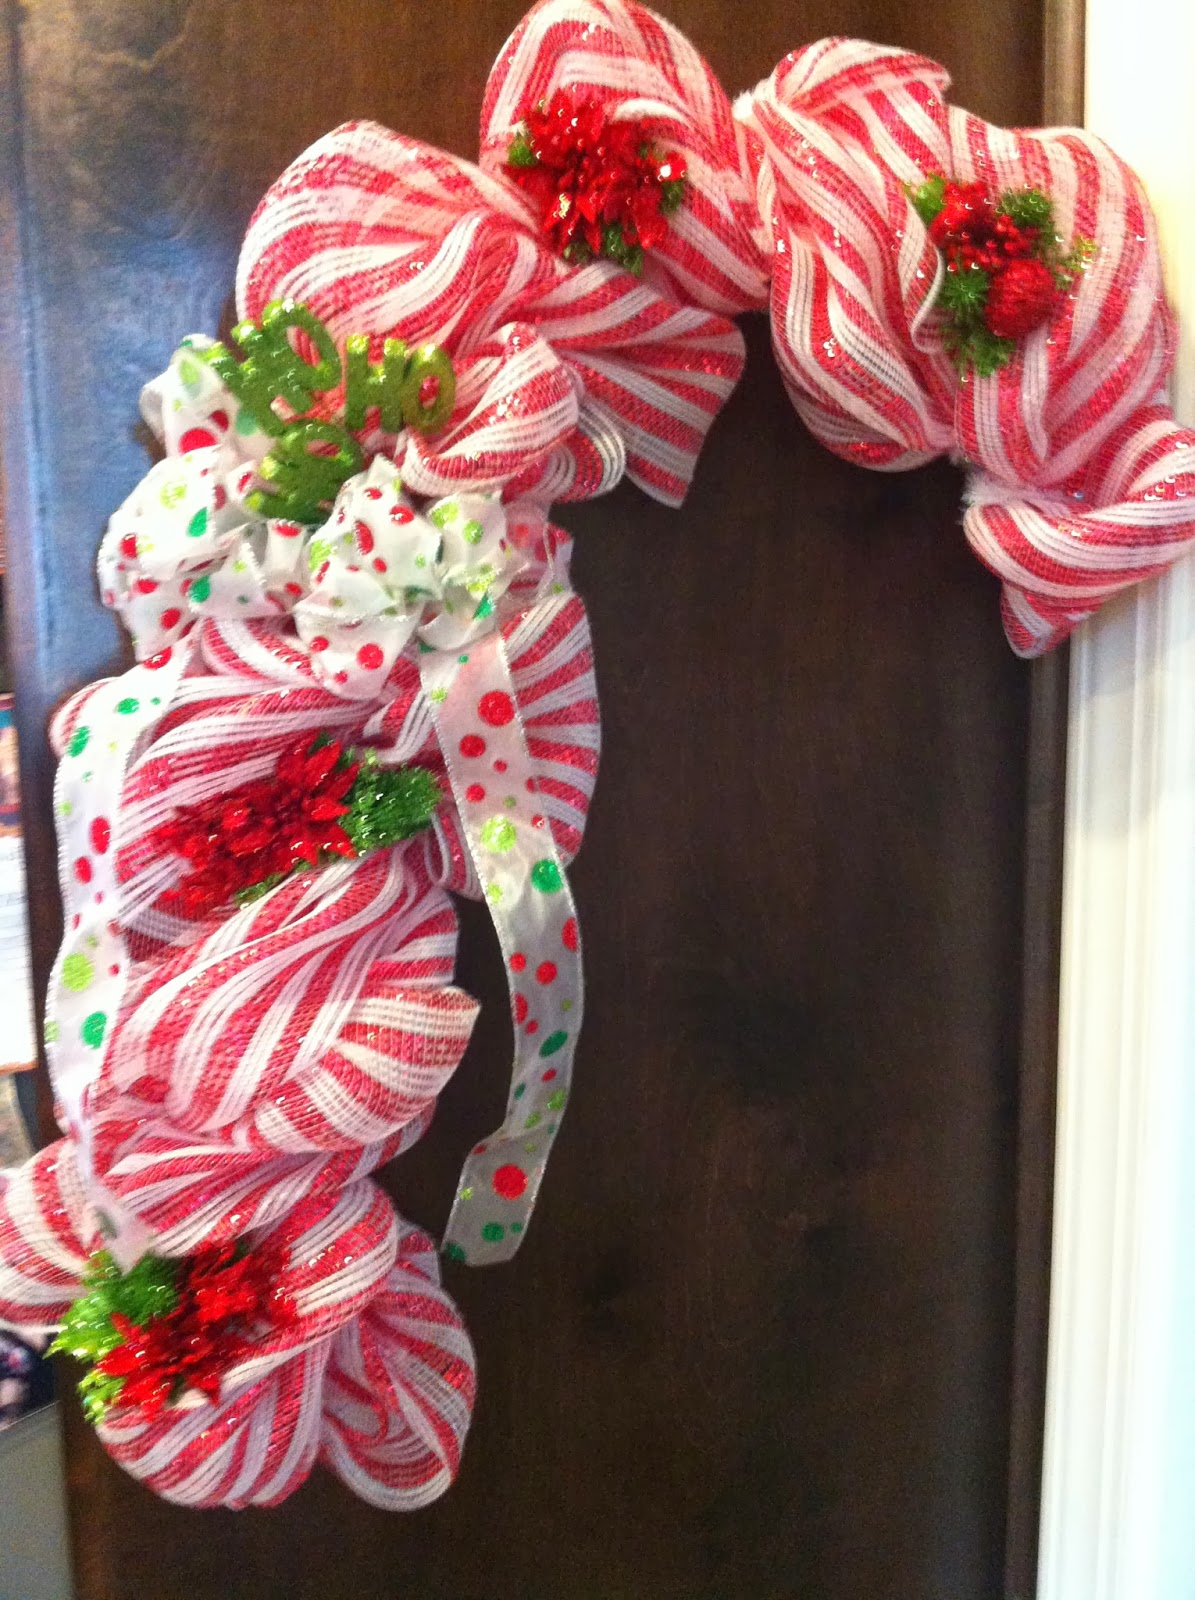 My Crafty World: Candy Cane Deco Mesh Wreath